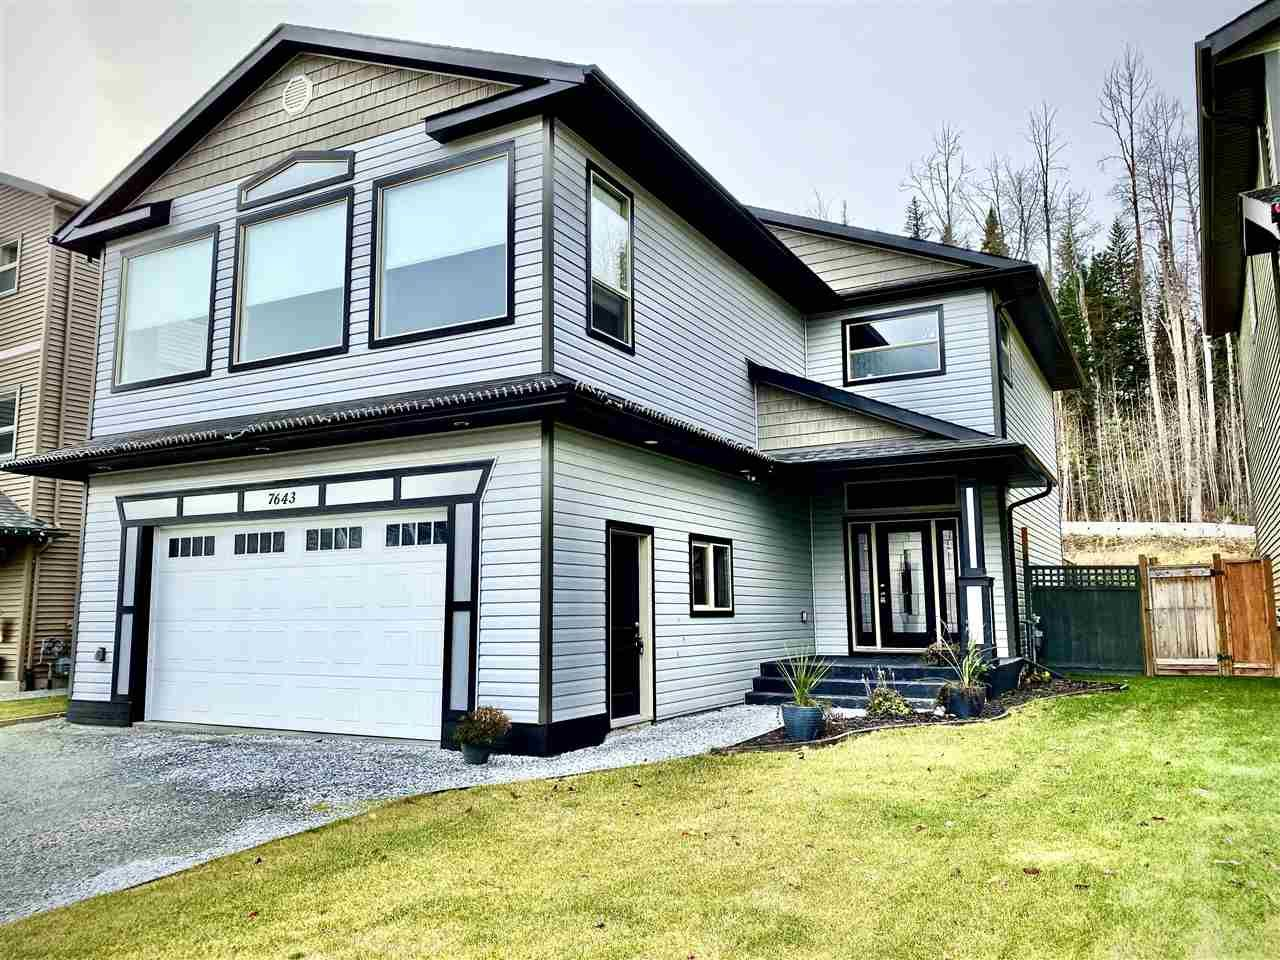 Main Photo: 7643 STILLWATER Crescent in Prince George: Lower College House for sale (PG City South (Zone 74))  : MLS®# R2450790